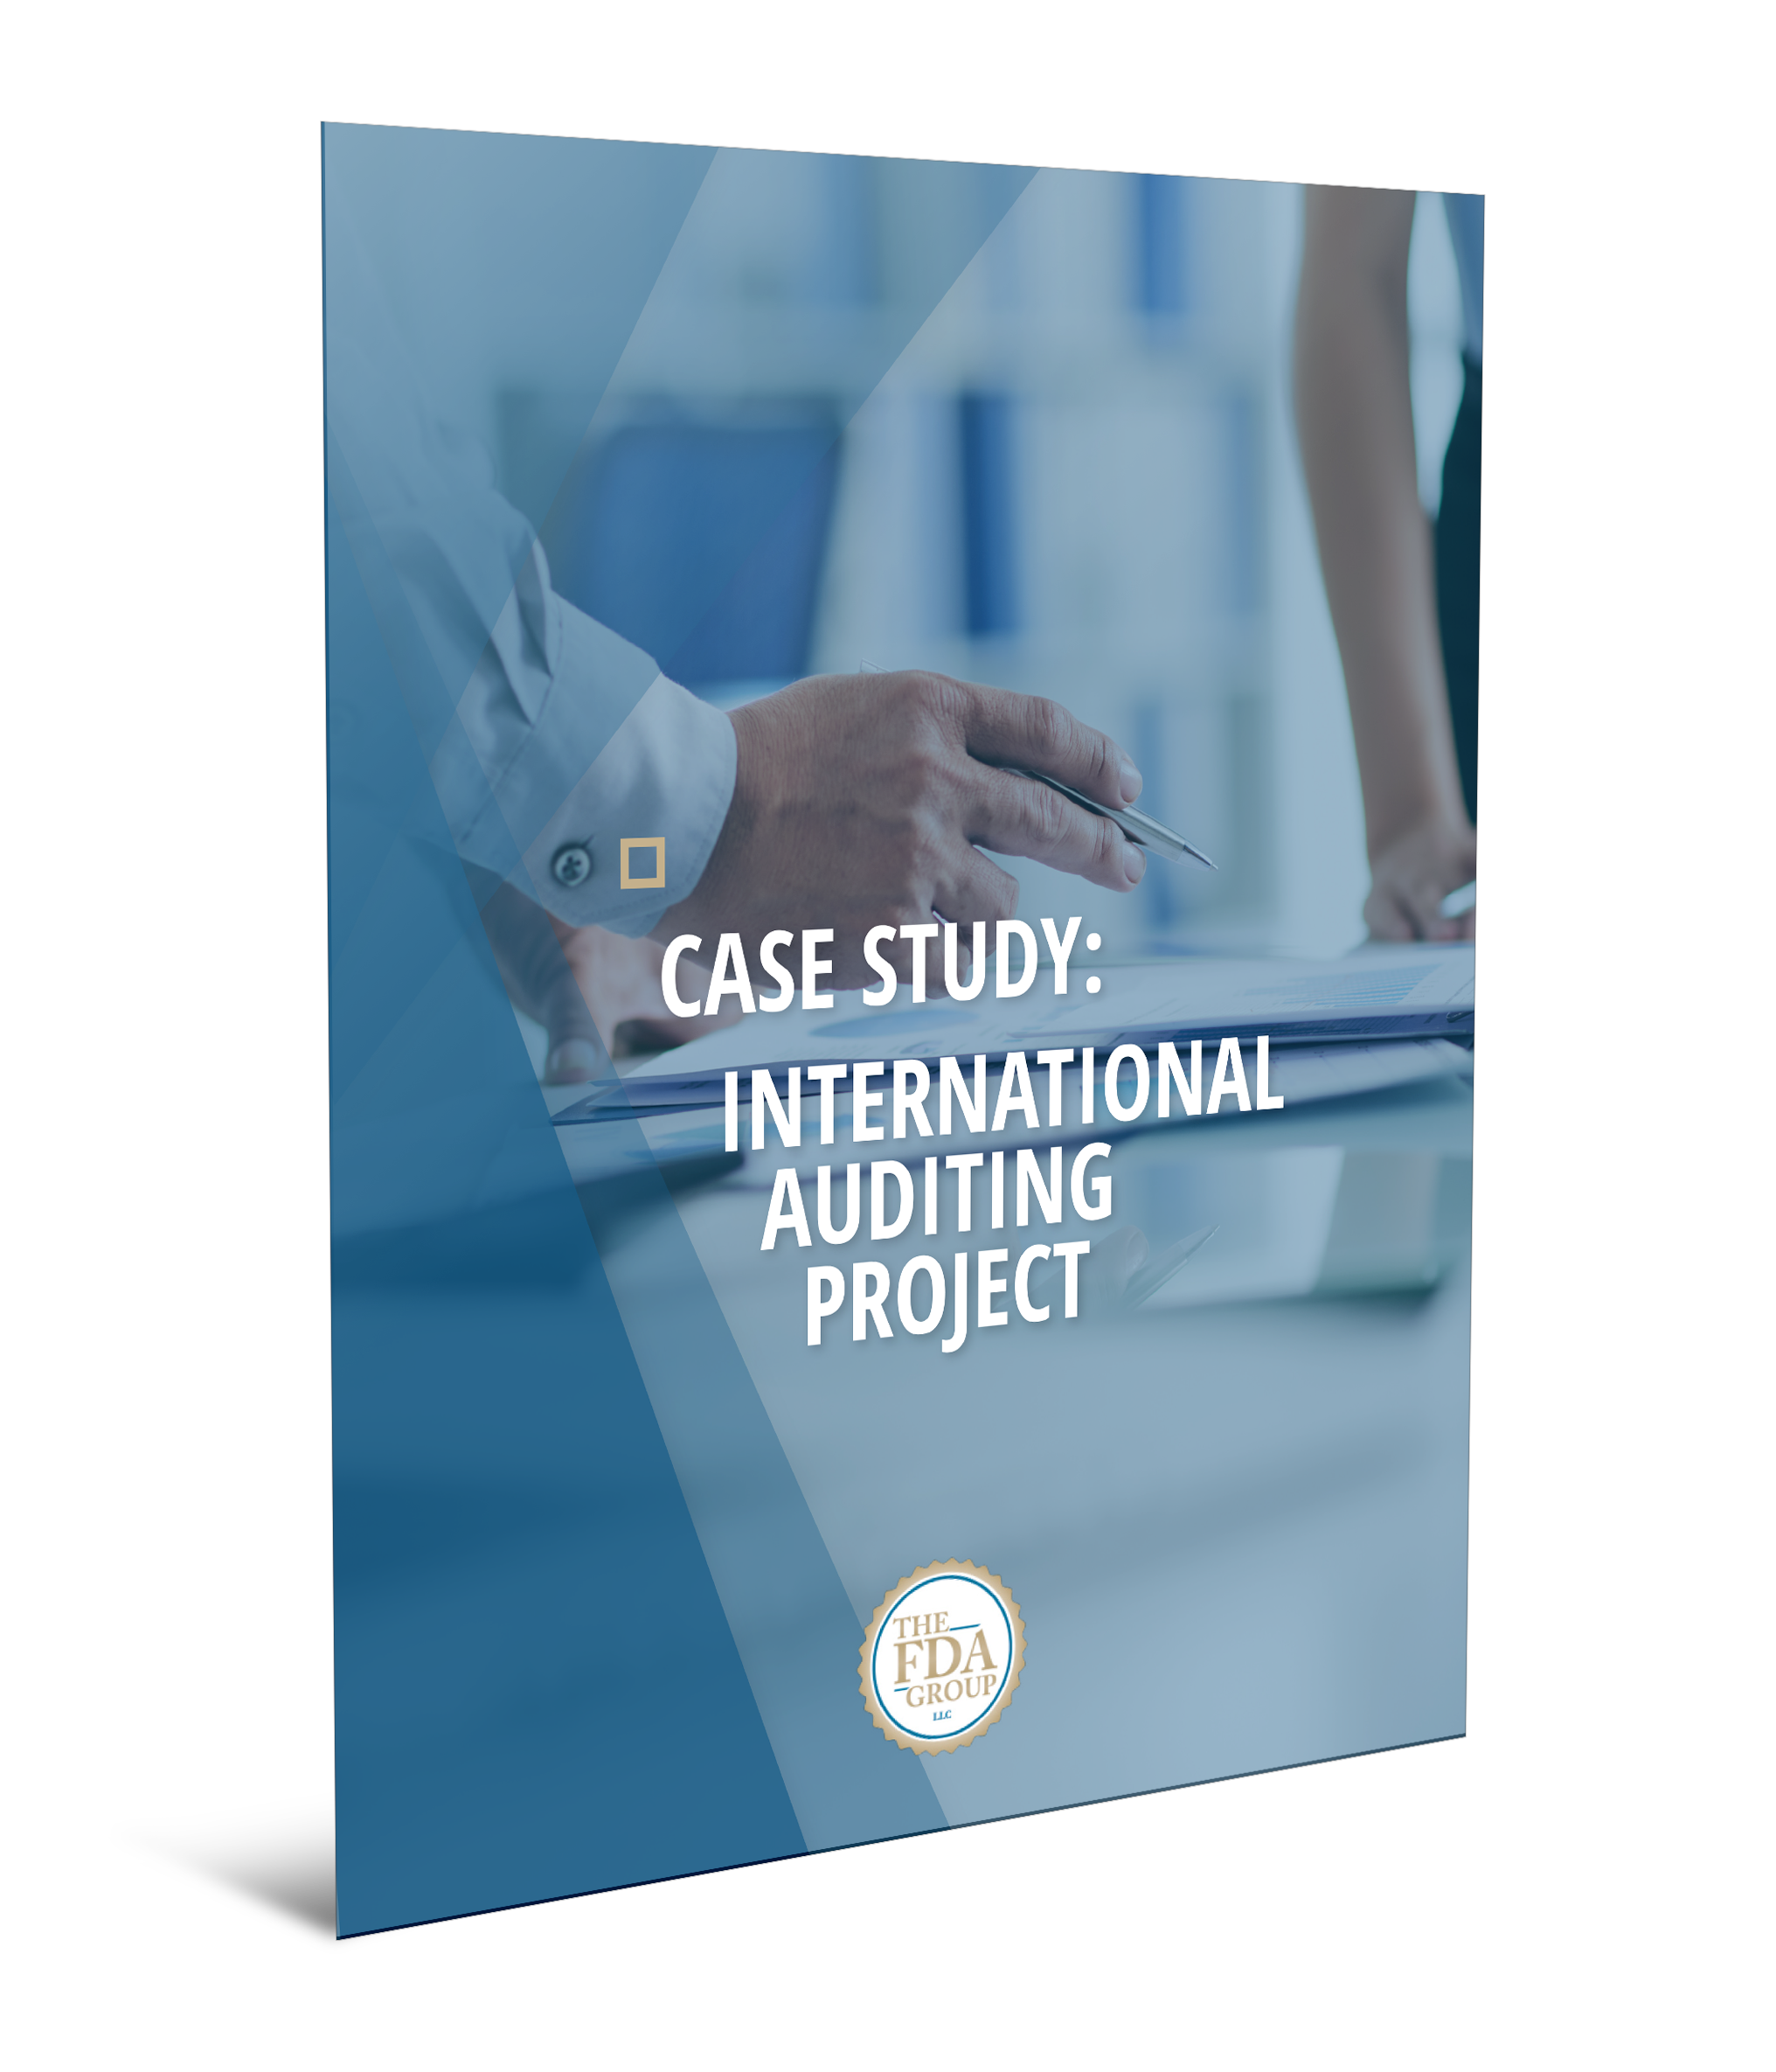 Case Study: International Auditing Project